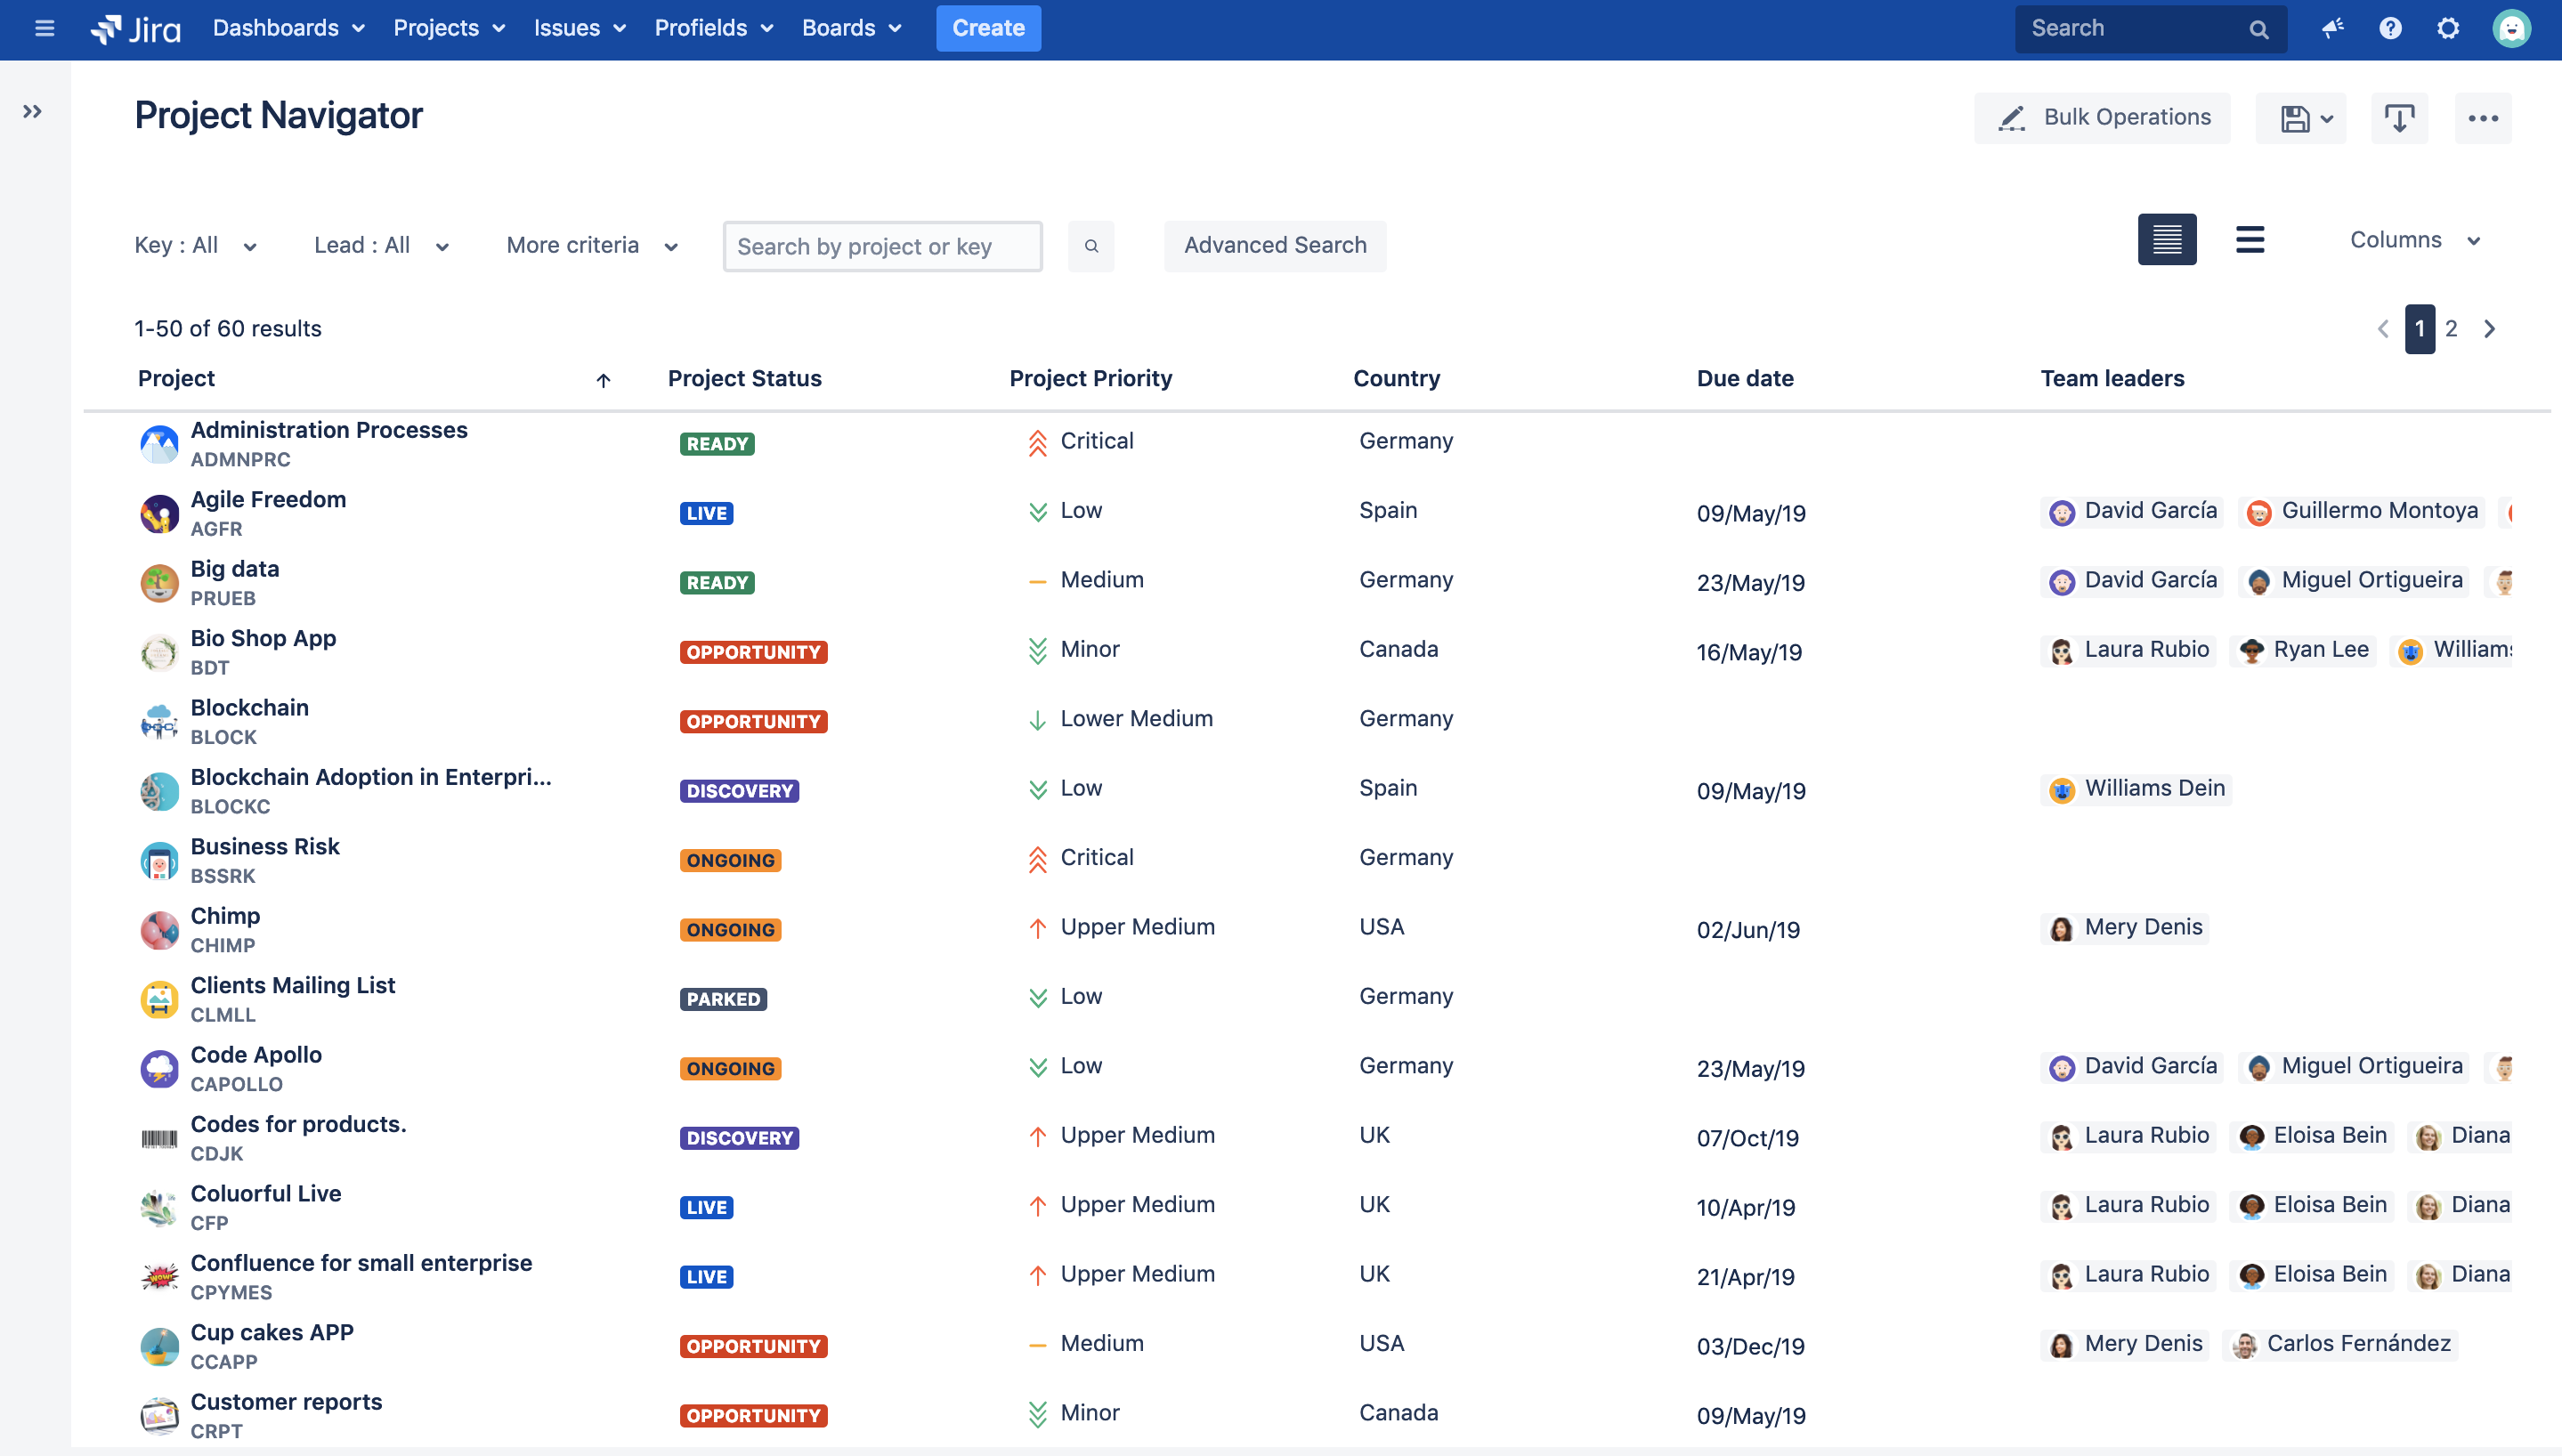 Jira Projects searches enhanced with Profields Jira app - Project Navigator.